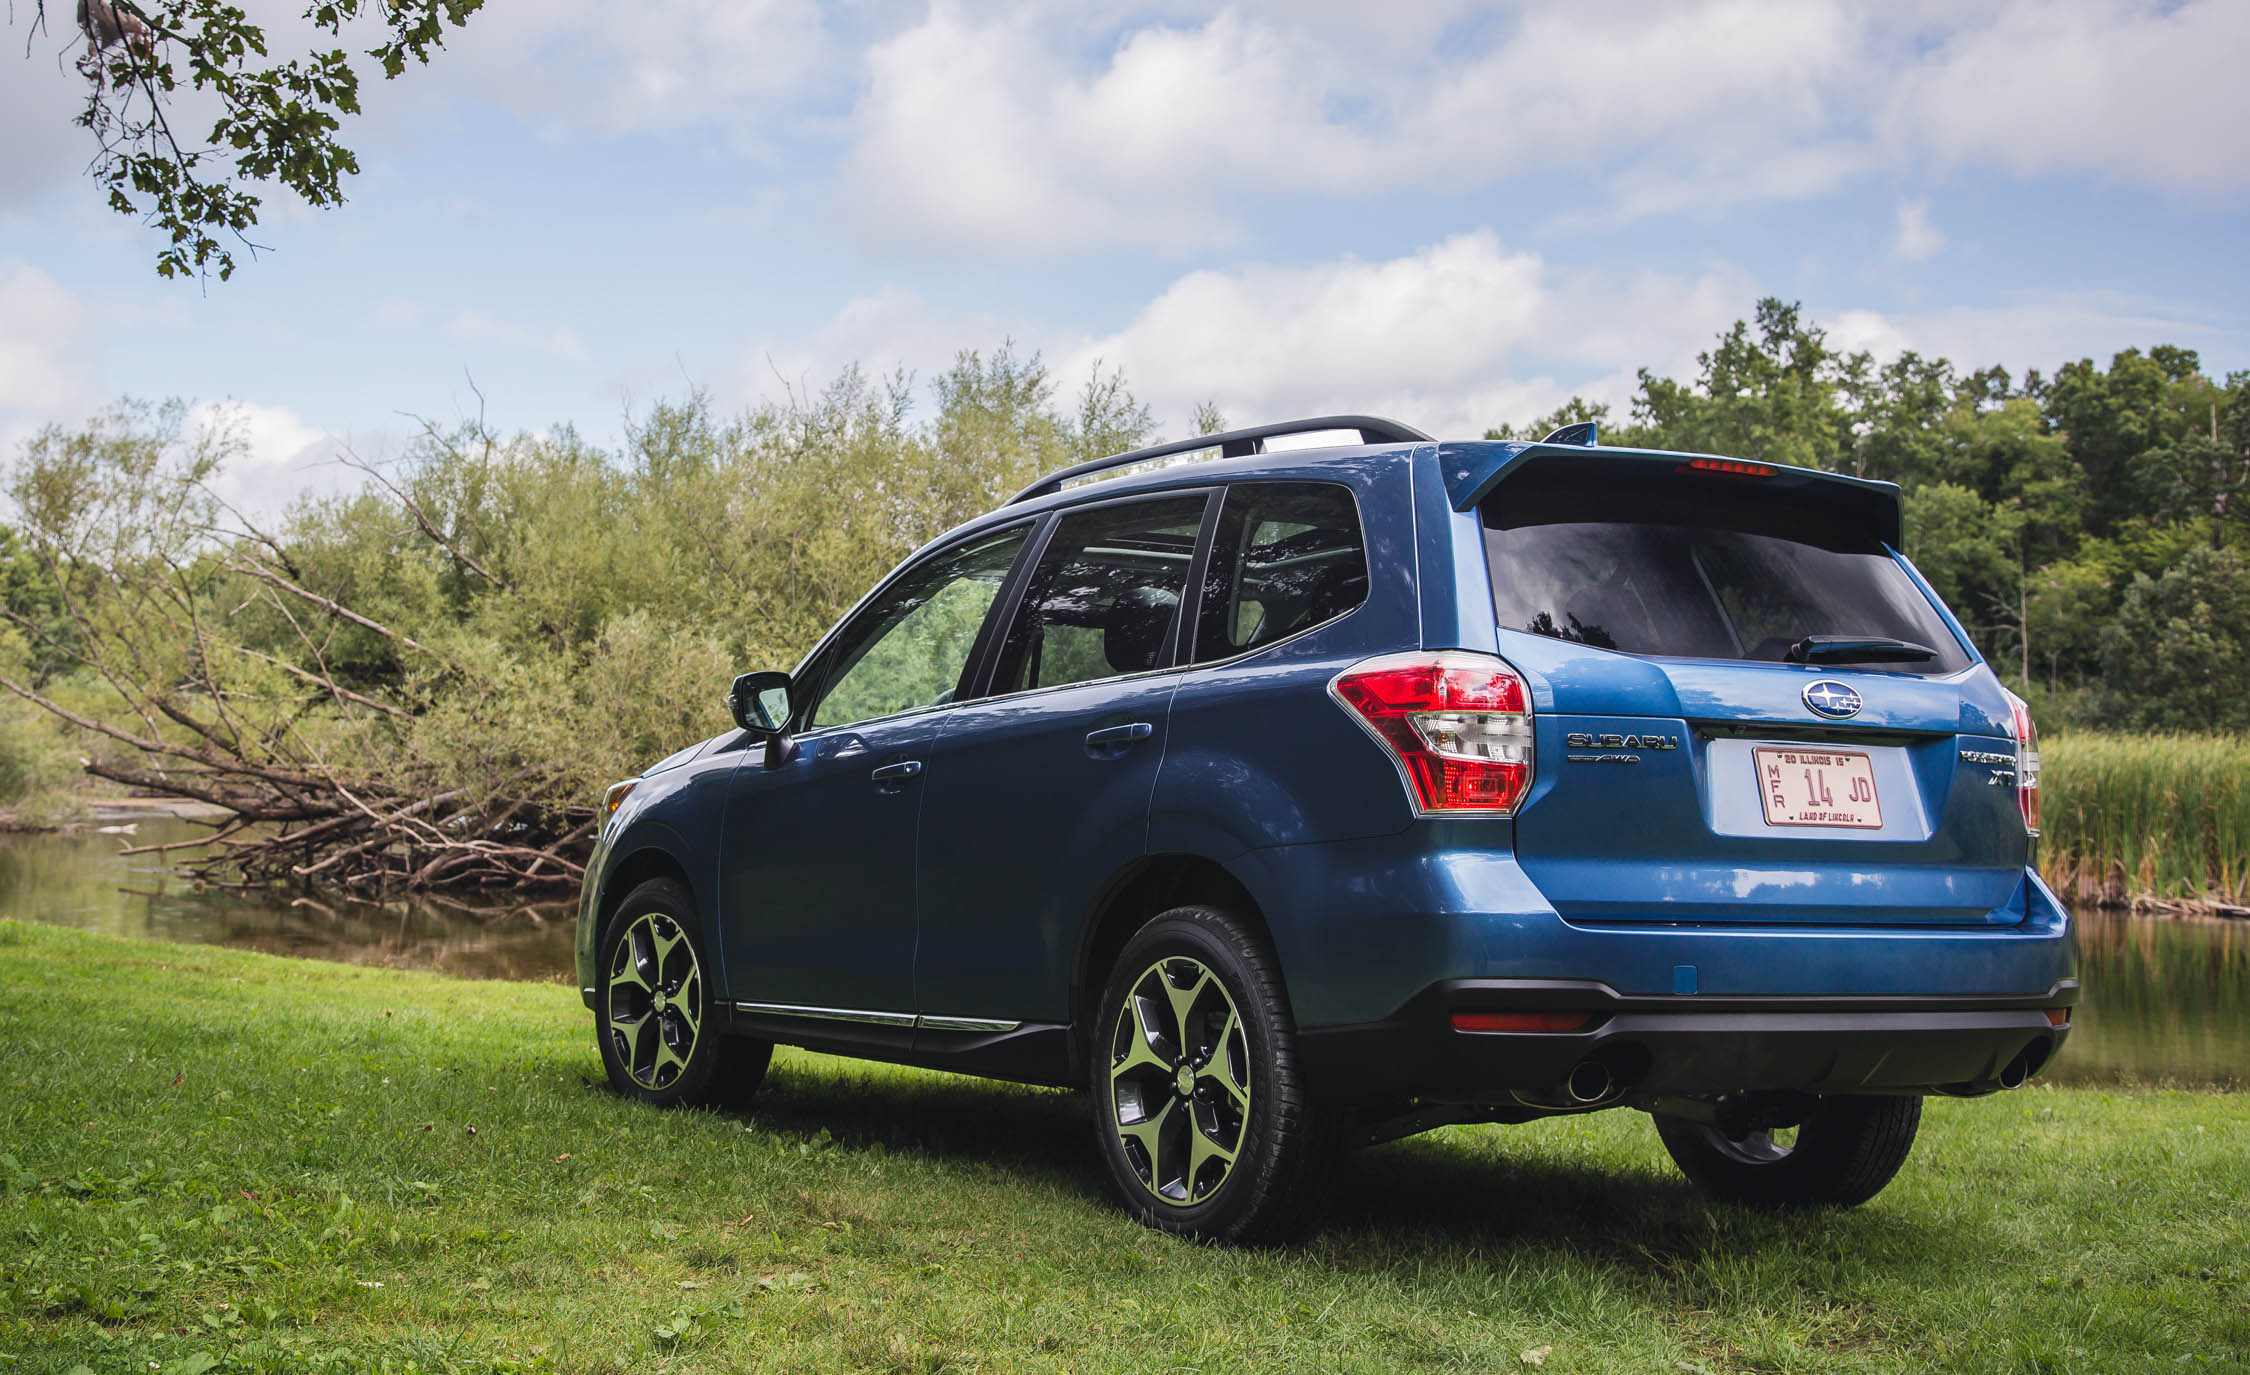 2016 Subaru Forester 2.0XT Touring Exterior Full Rear and Side